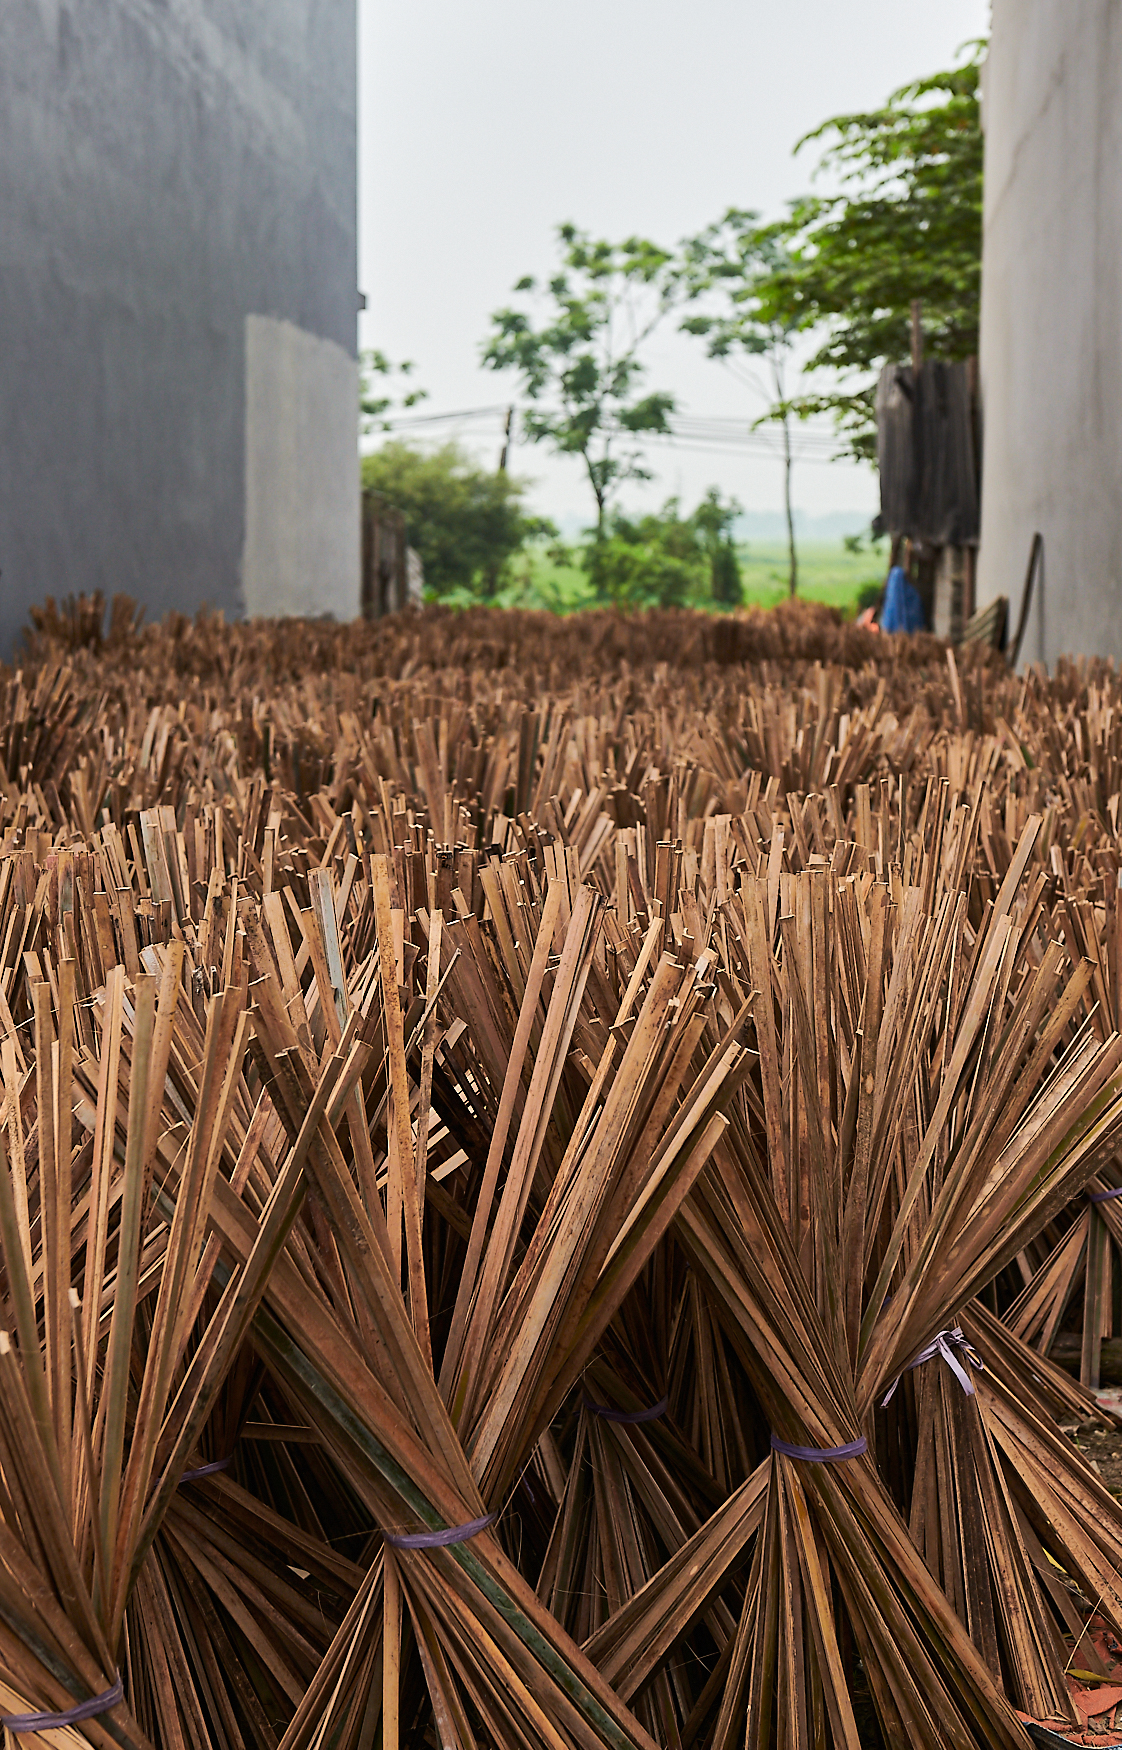 Stage 1 cut bamboo sticks drying in the sun prior to processing